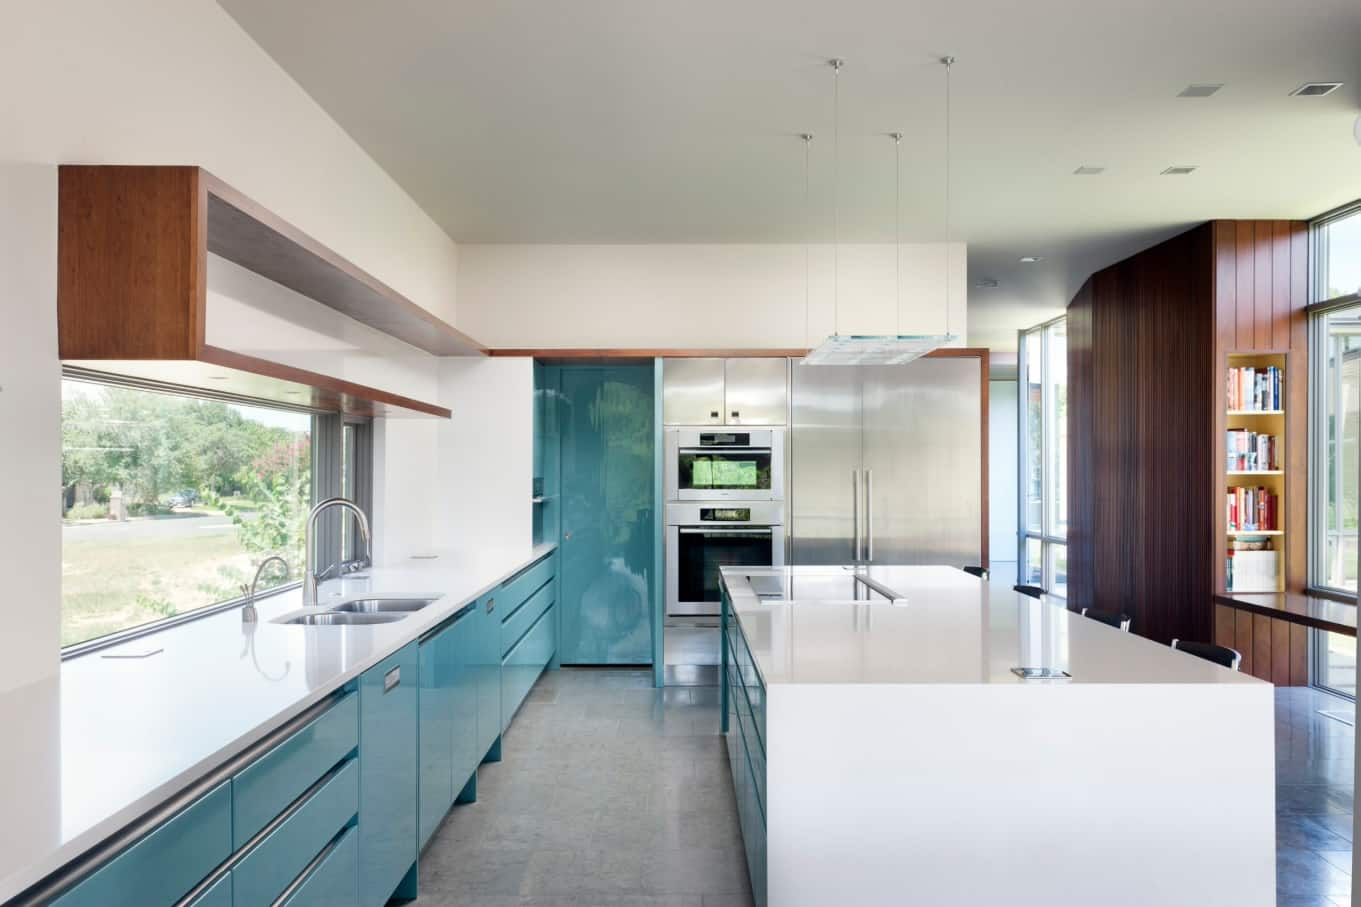 How to Pick the Best Colours for Your Kitchen. Azure and glossy kitchen cabinets' facades